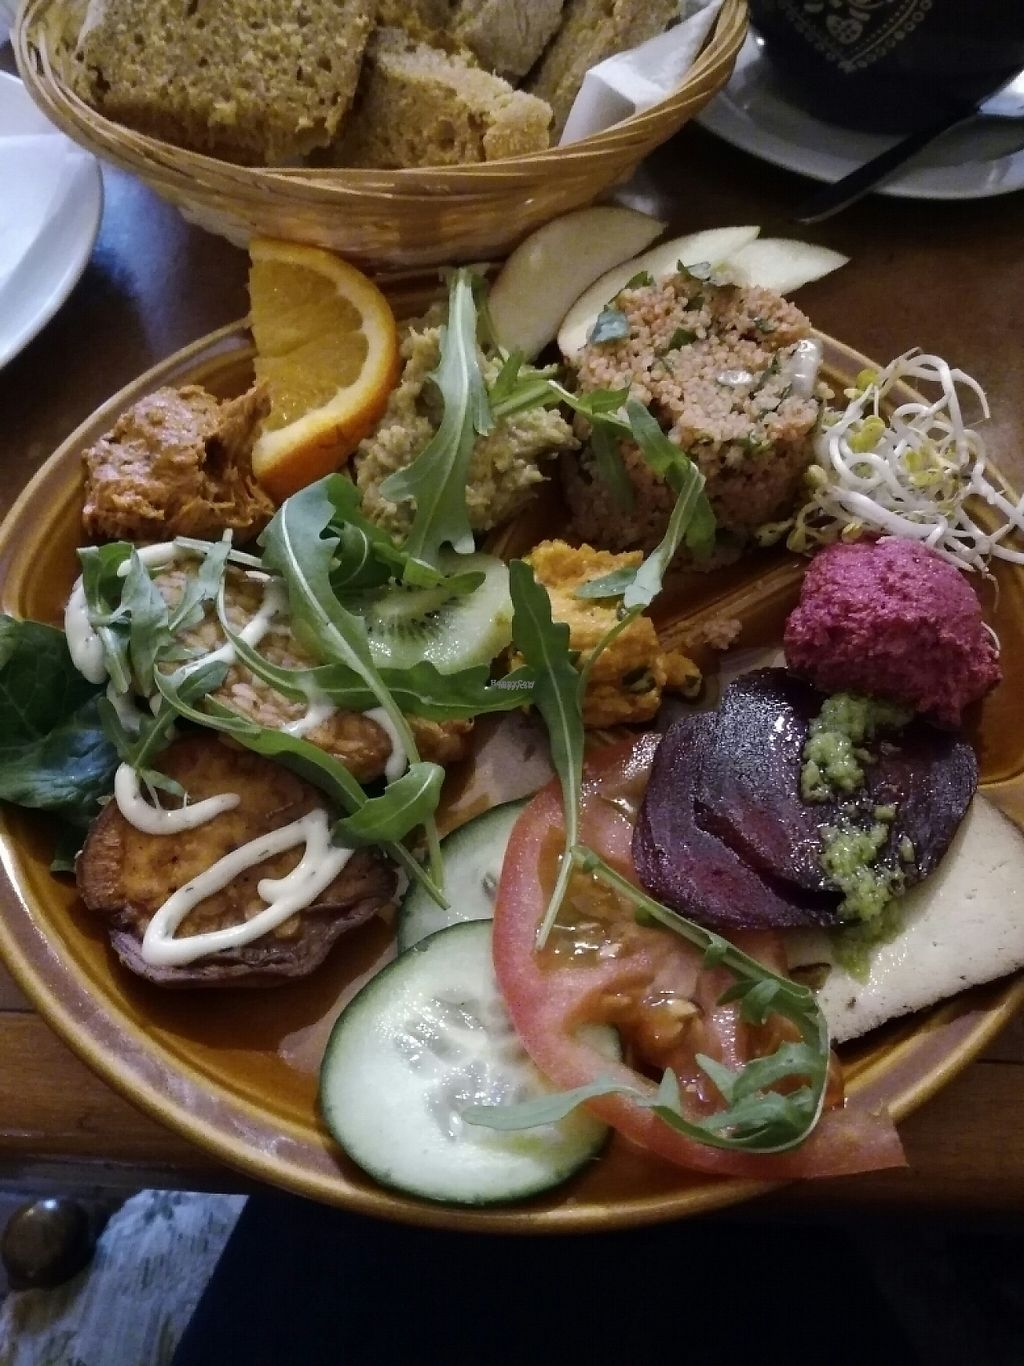 """Photo of Geh Veg  by <a href=""""/members/profile/AnaGabriela"""">AnaGabriela</a> <br/>vegan everything :) <br/> March 31, 2017  - <a href='/contact/abuse/image/54502/243118'>Report</a>"""